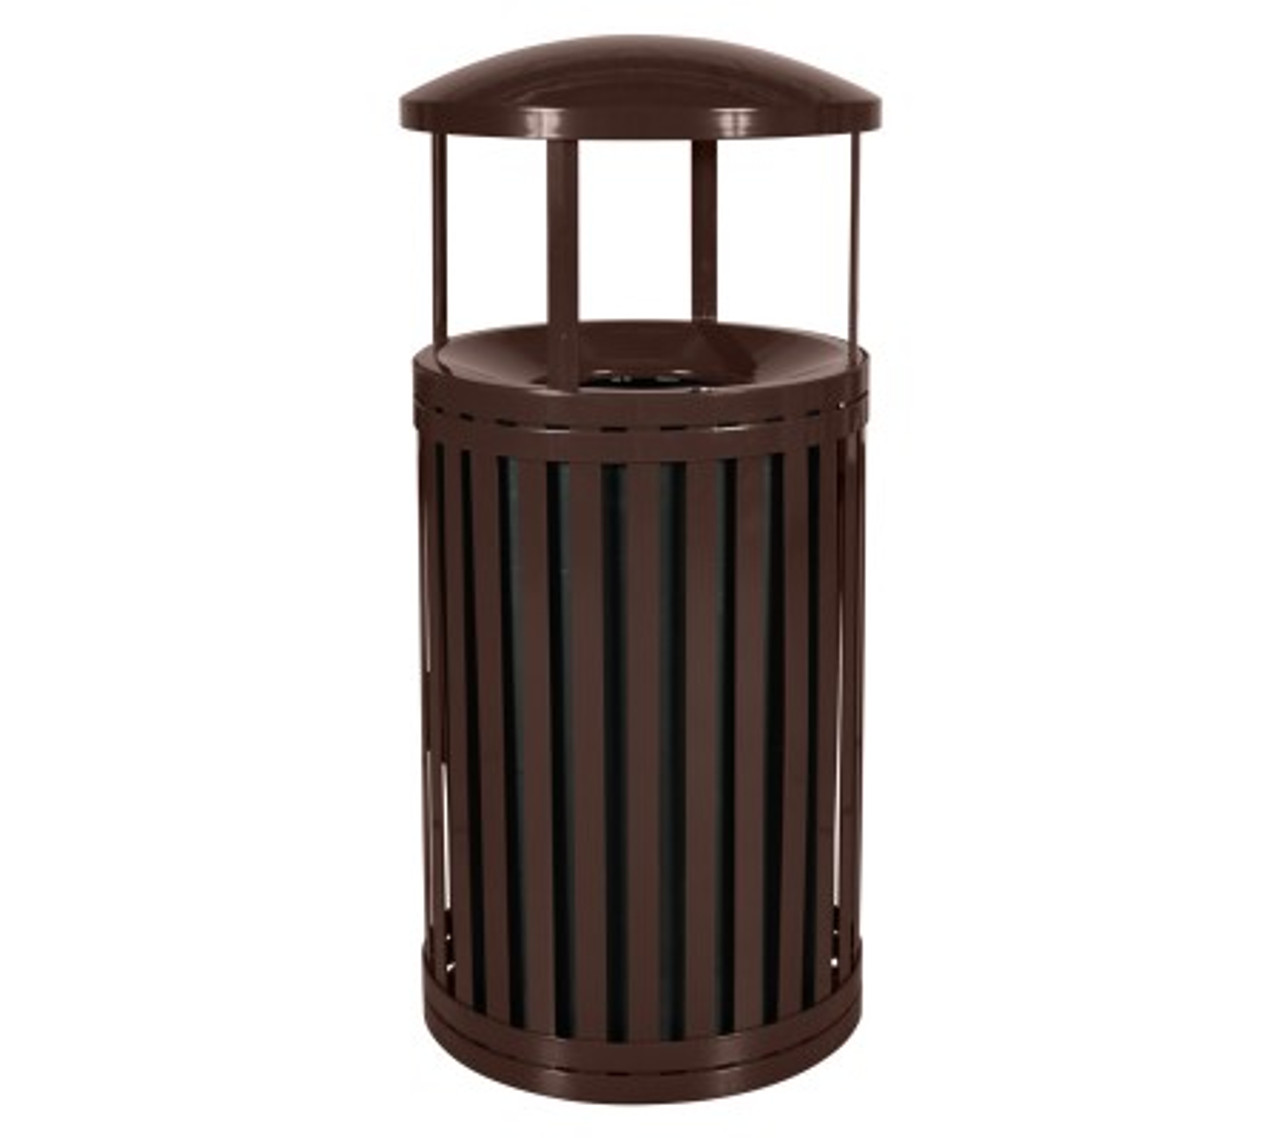 East Hampton 45 Gallon SCTP-40 D ND Covered Trash Can Coffee